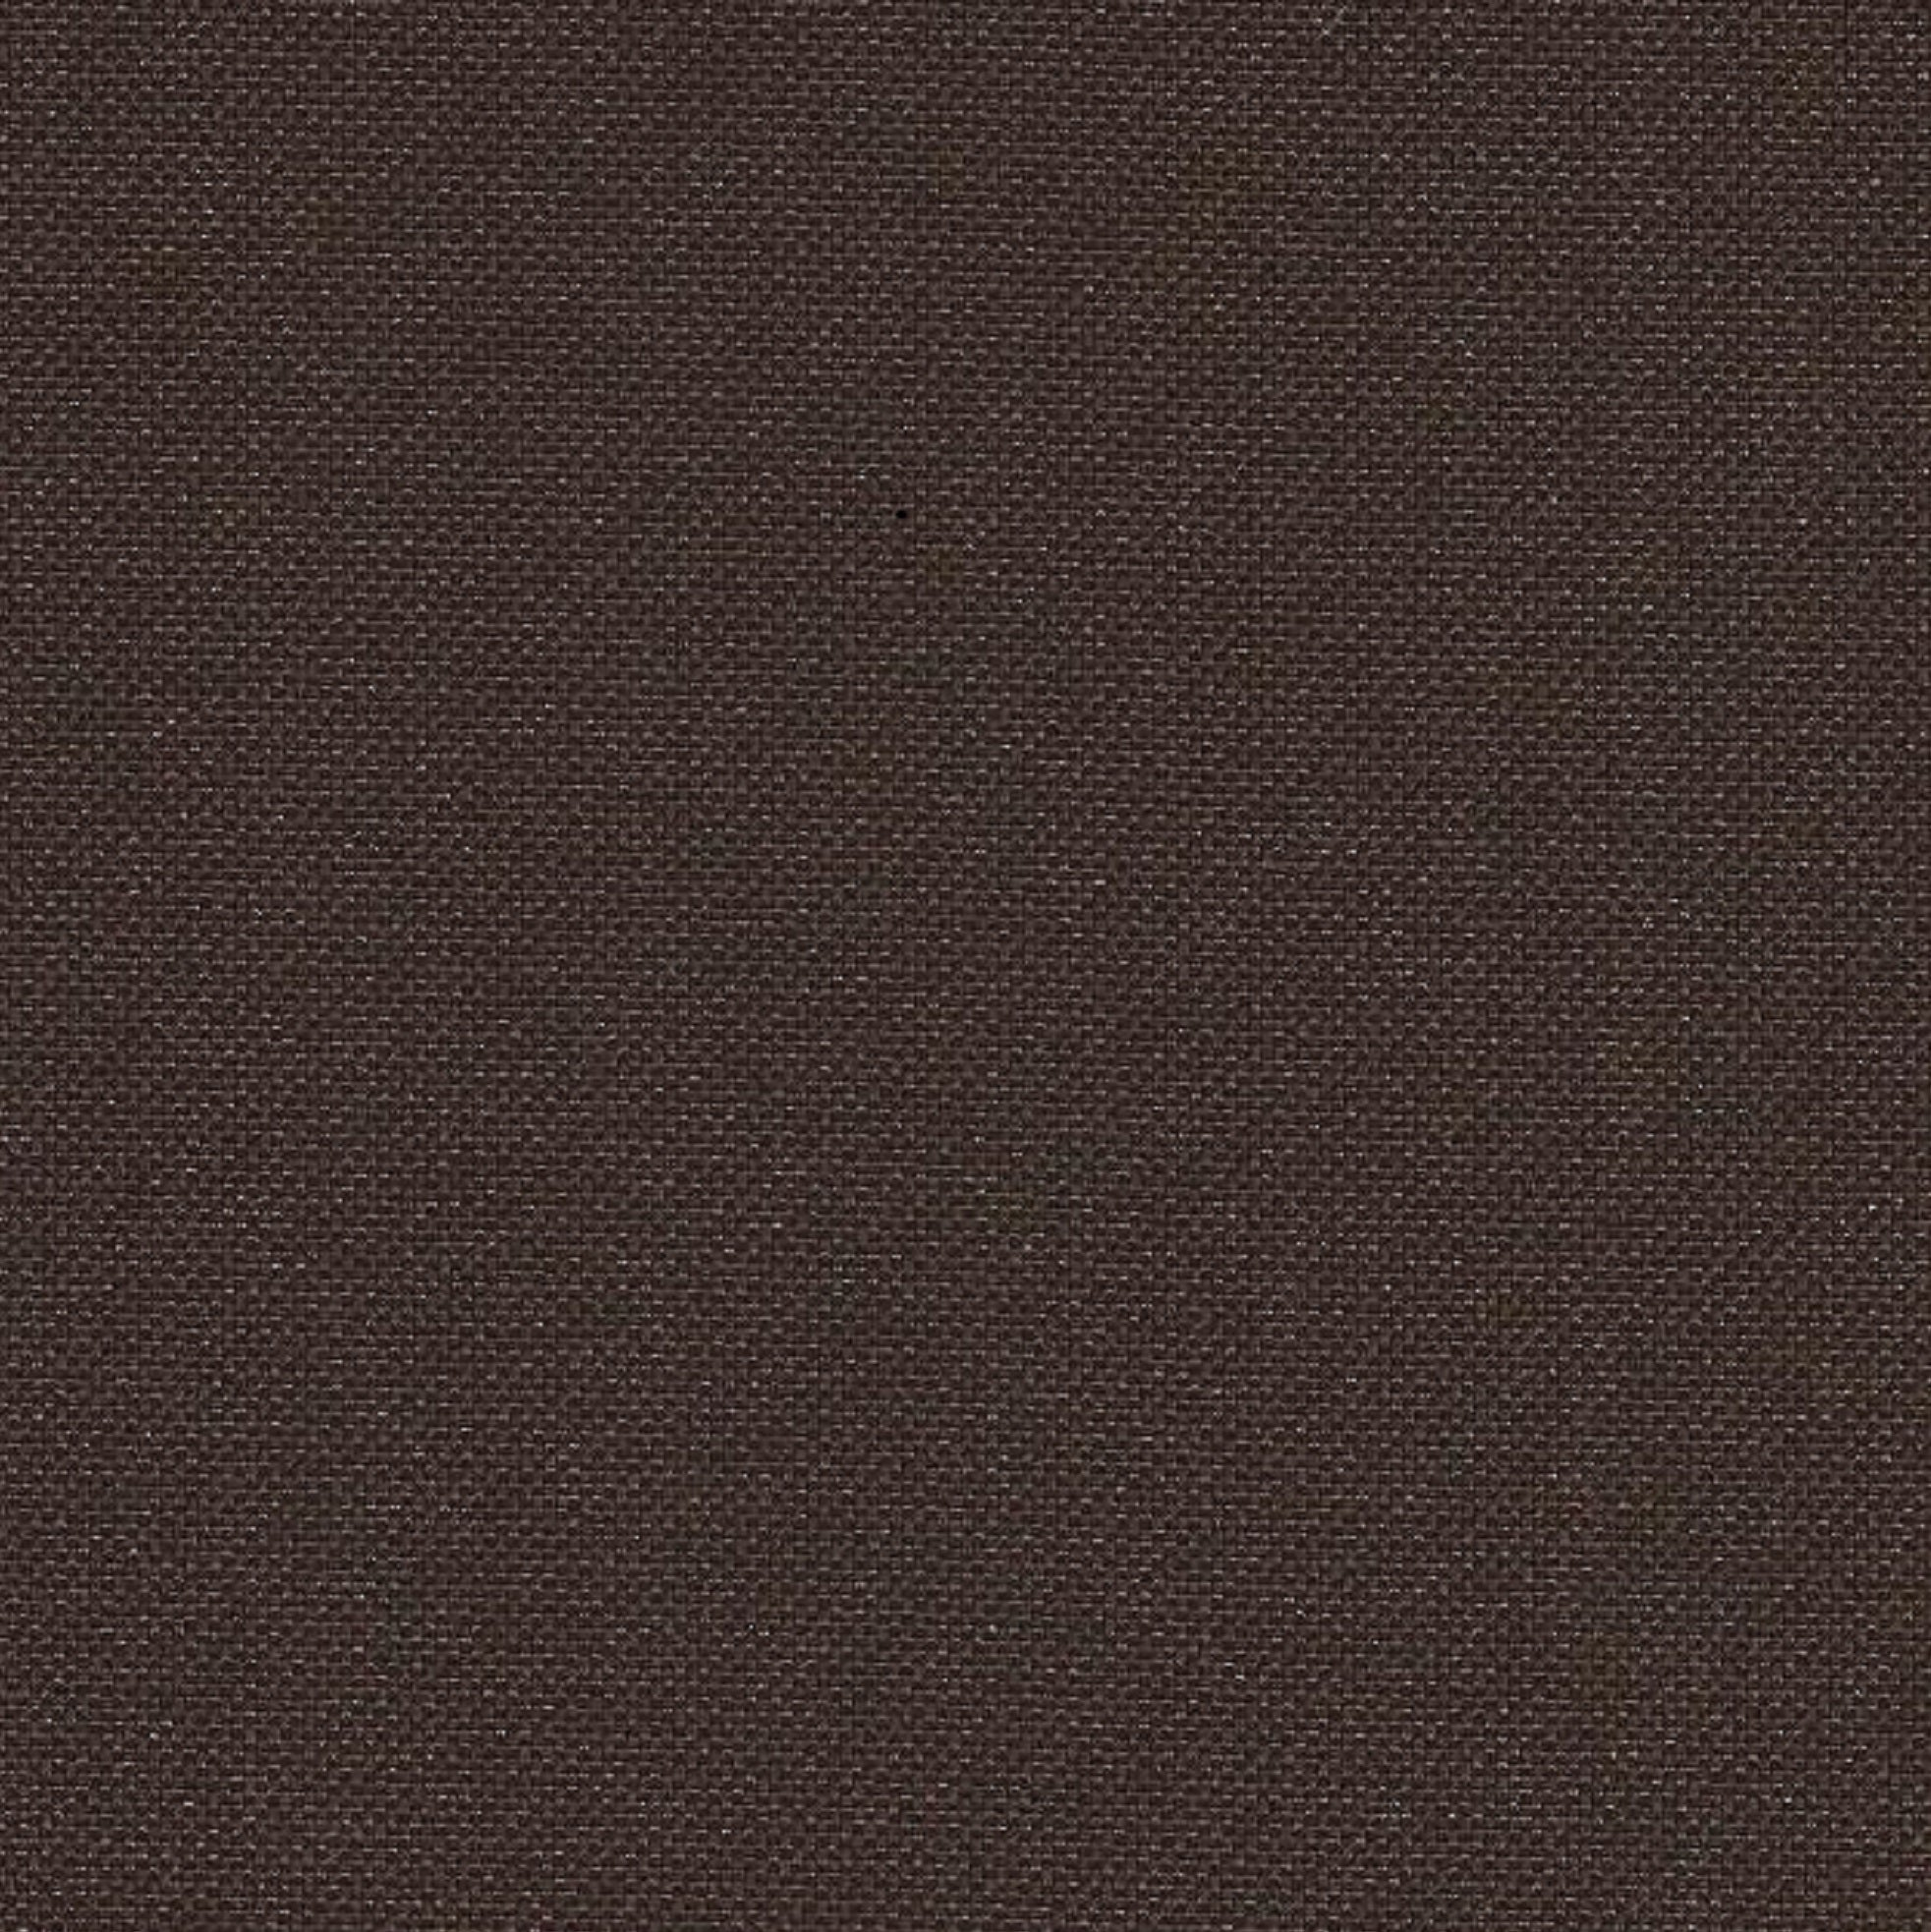 Elements Cocoa waterproof fabric for dog beds